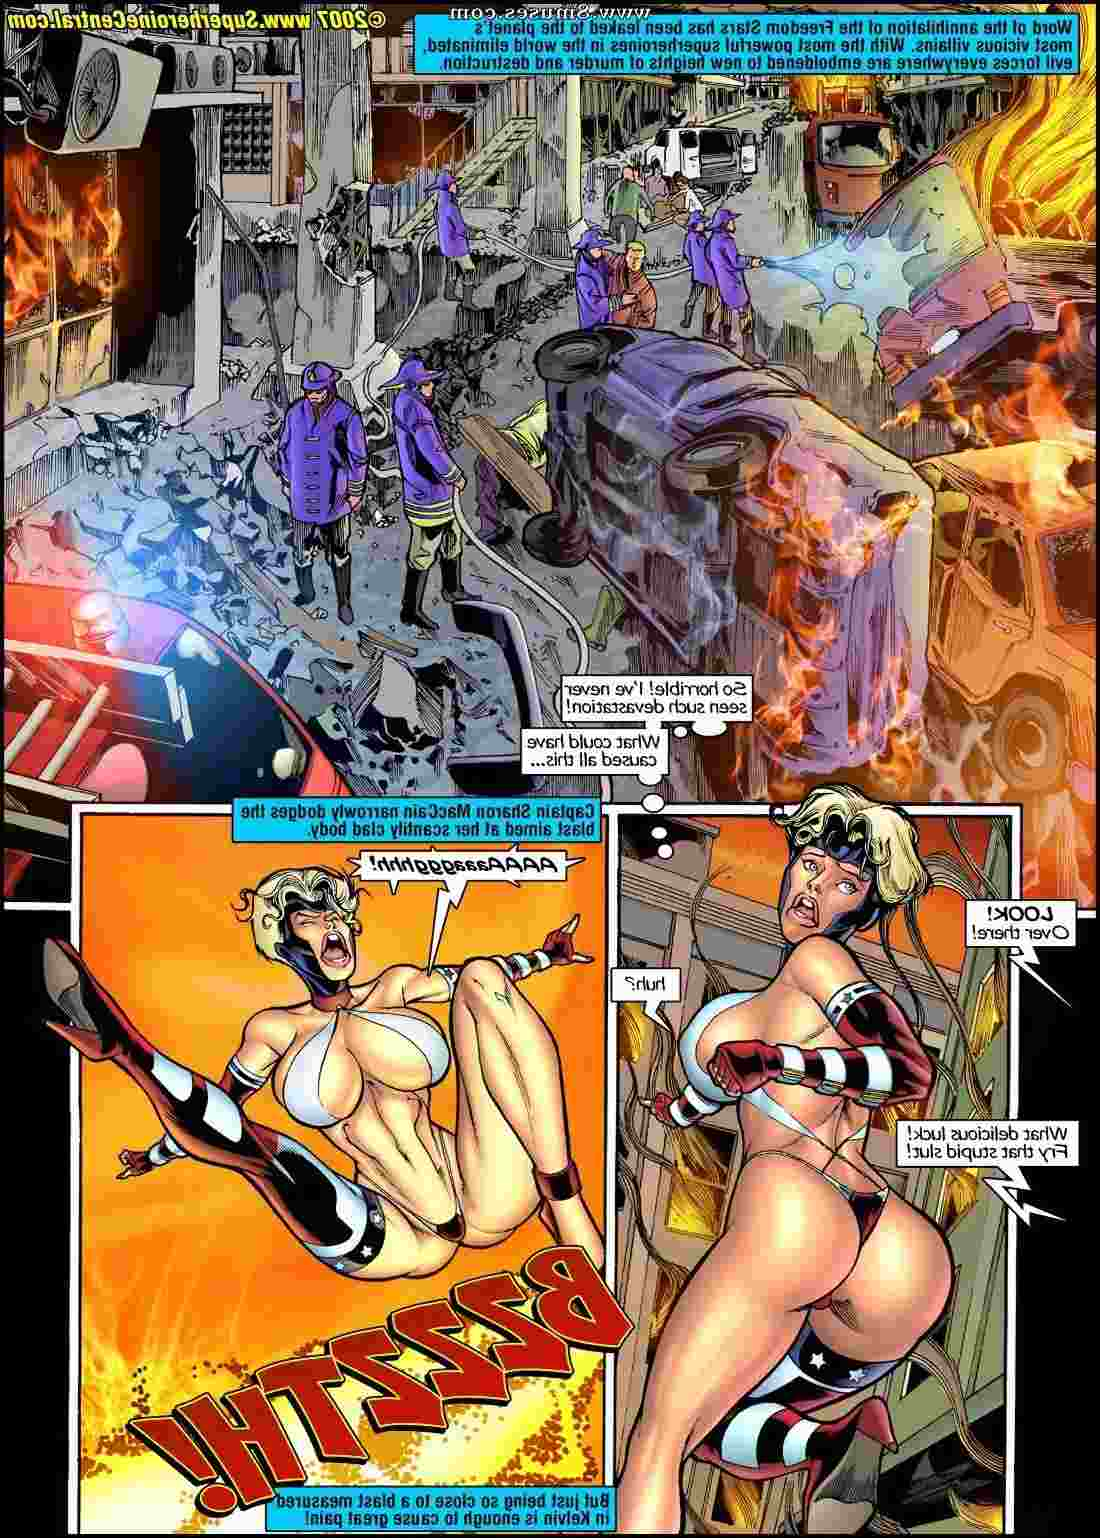 SuperHeroineComixxx/Freedom-Stars-in-Cream-of-the-Crop Freedom_Stars_in_Cream_of_the_Crop__8muses_-_Sex_and_Porn_Comics_21.jpg